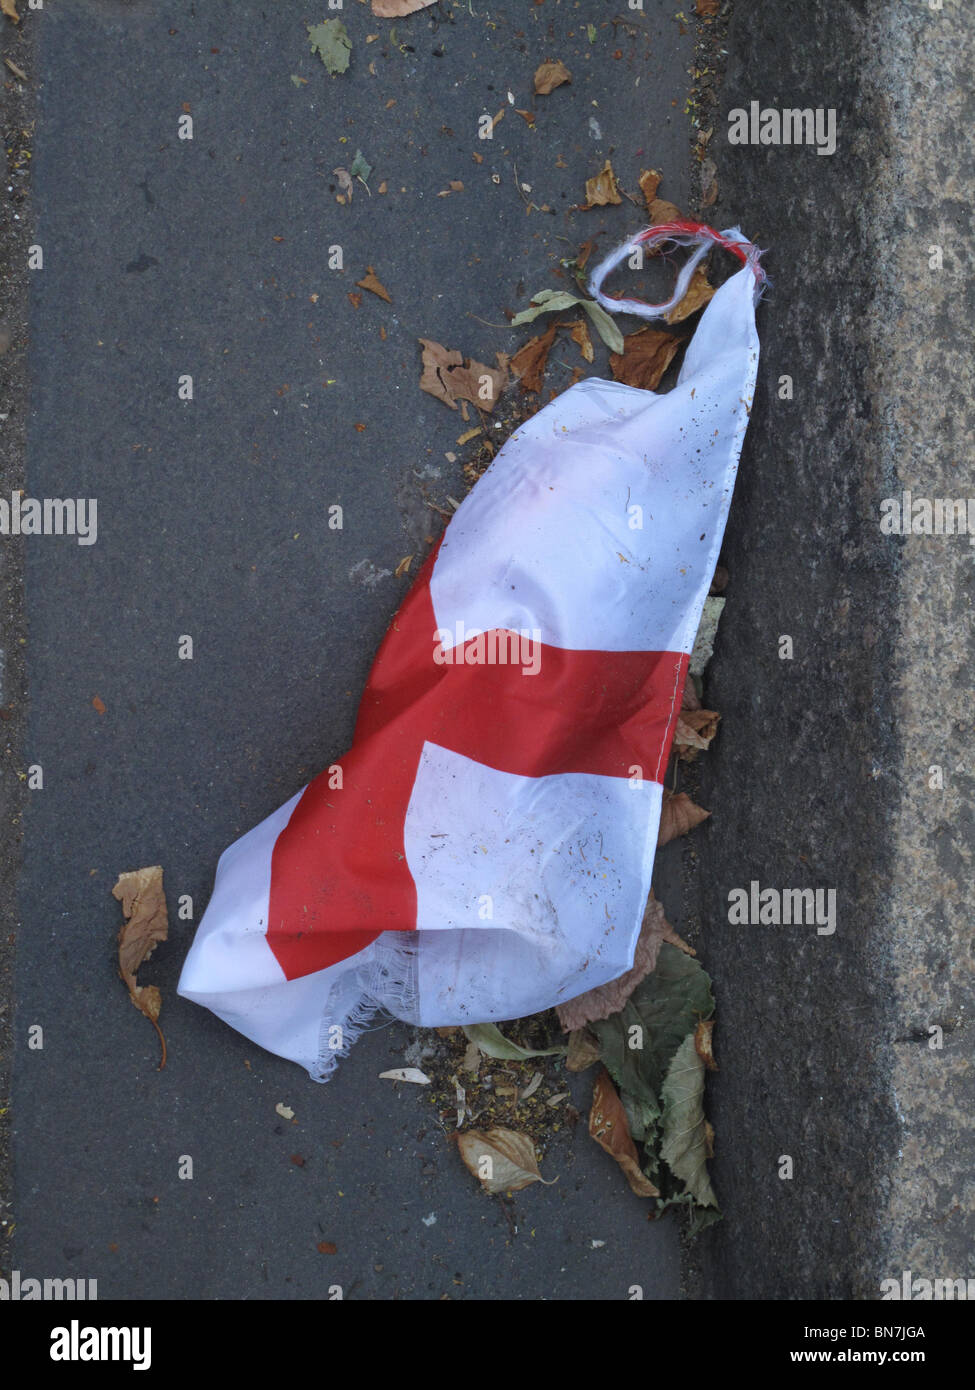 London July 2010.World cup England flag discarded in the gutter after England was defeated by Germany at football - Stock Image